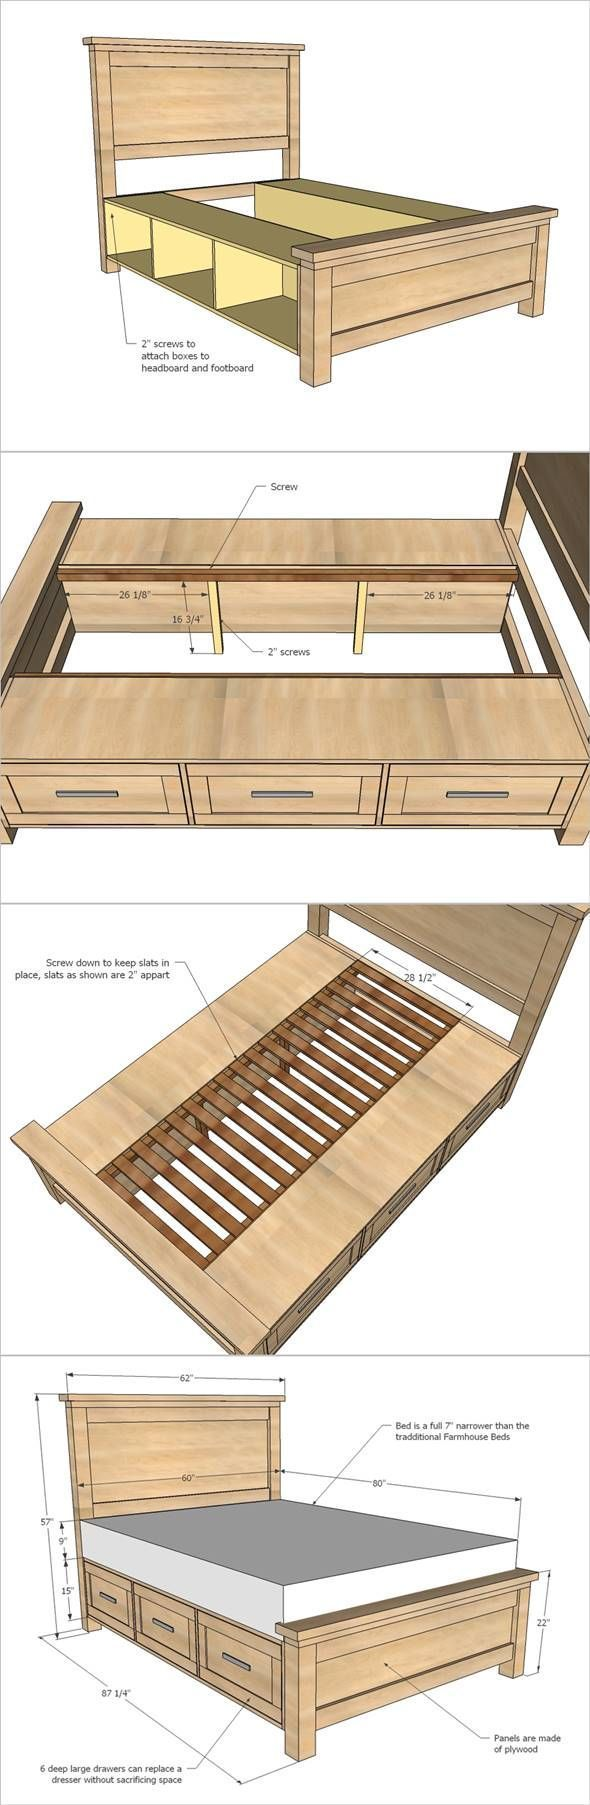 There are lots of valuable hints for your wood working endeavors found at http://woodesigns.4web2refer.com/.